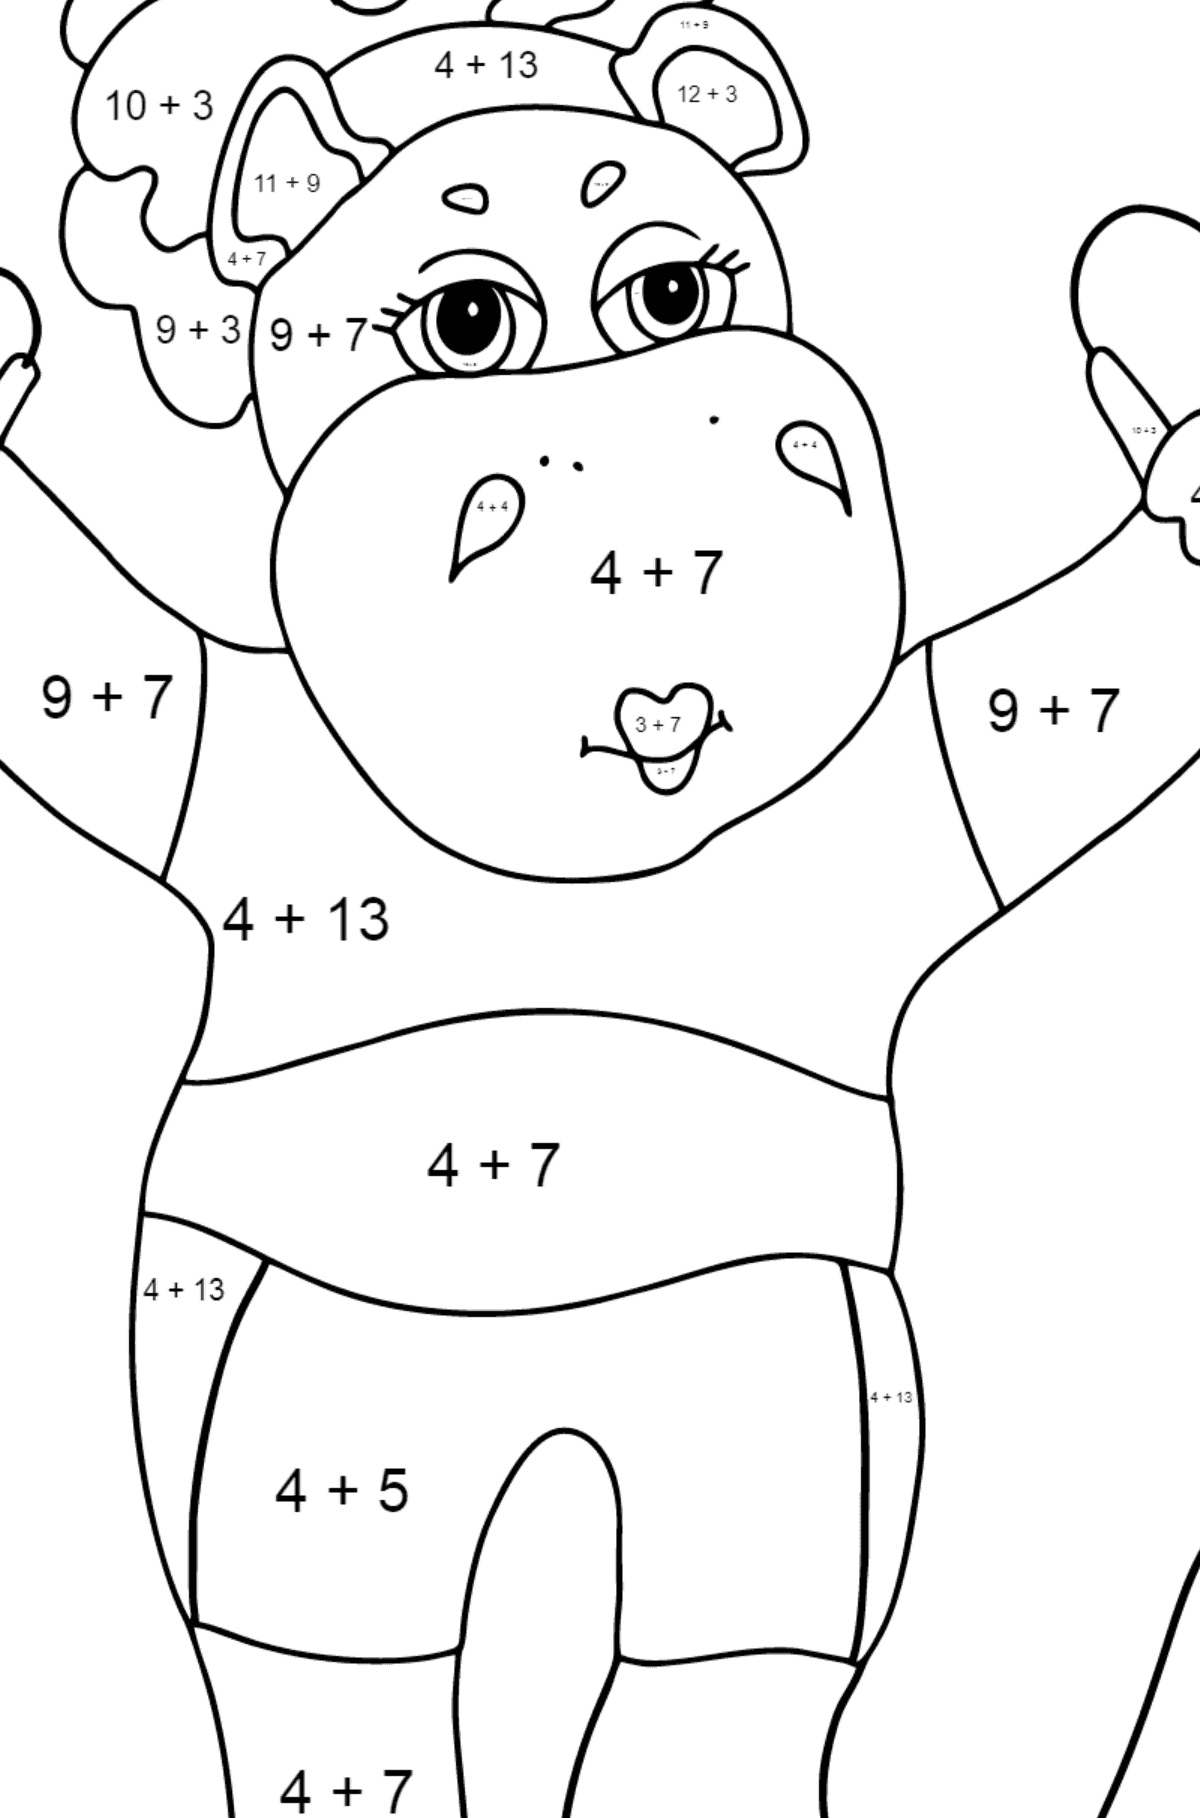 Coloring Page - A Hippo is Jumping on a Rope for Children  - Color by Number Addition